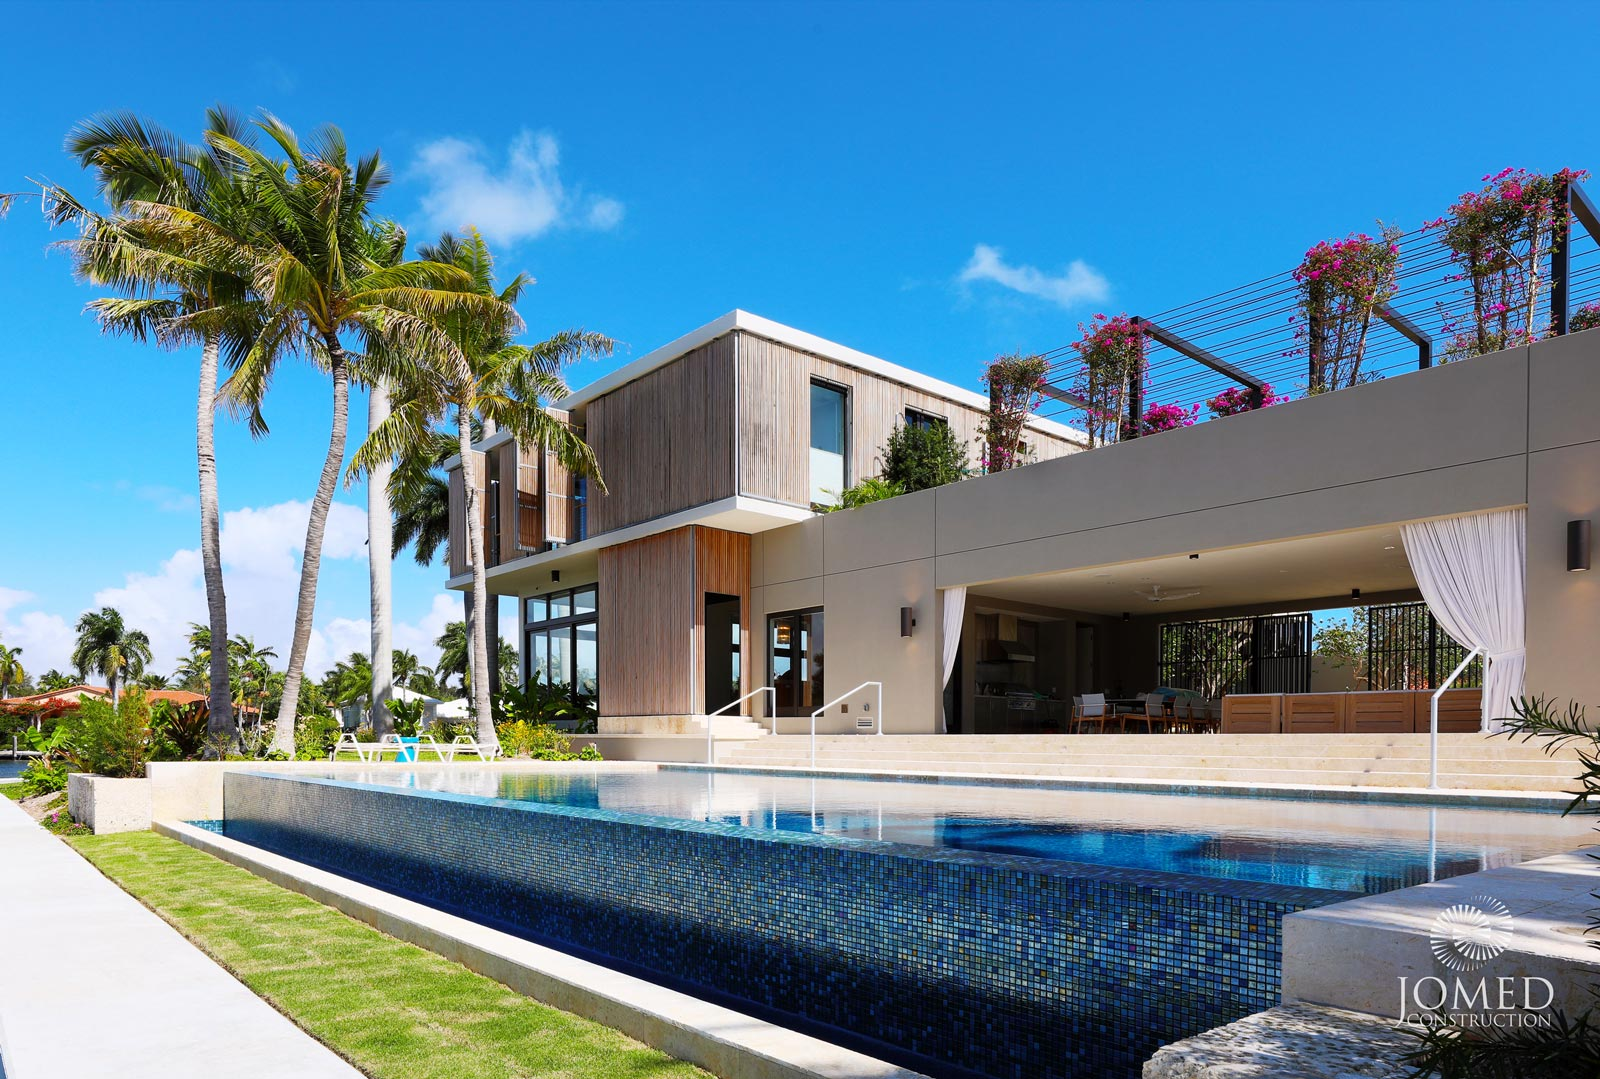 This twenty-first century estate dares to reimagine modern architecture with an enchanting rooftop garden overlooking the property's private marina dock on the Atlantic Intracoastal. The numerous window-lit spaces in this sophisticated abode offer a picturesque view of either the Mediterranean-style swimming pool or the artistic, front-yard garden.